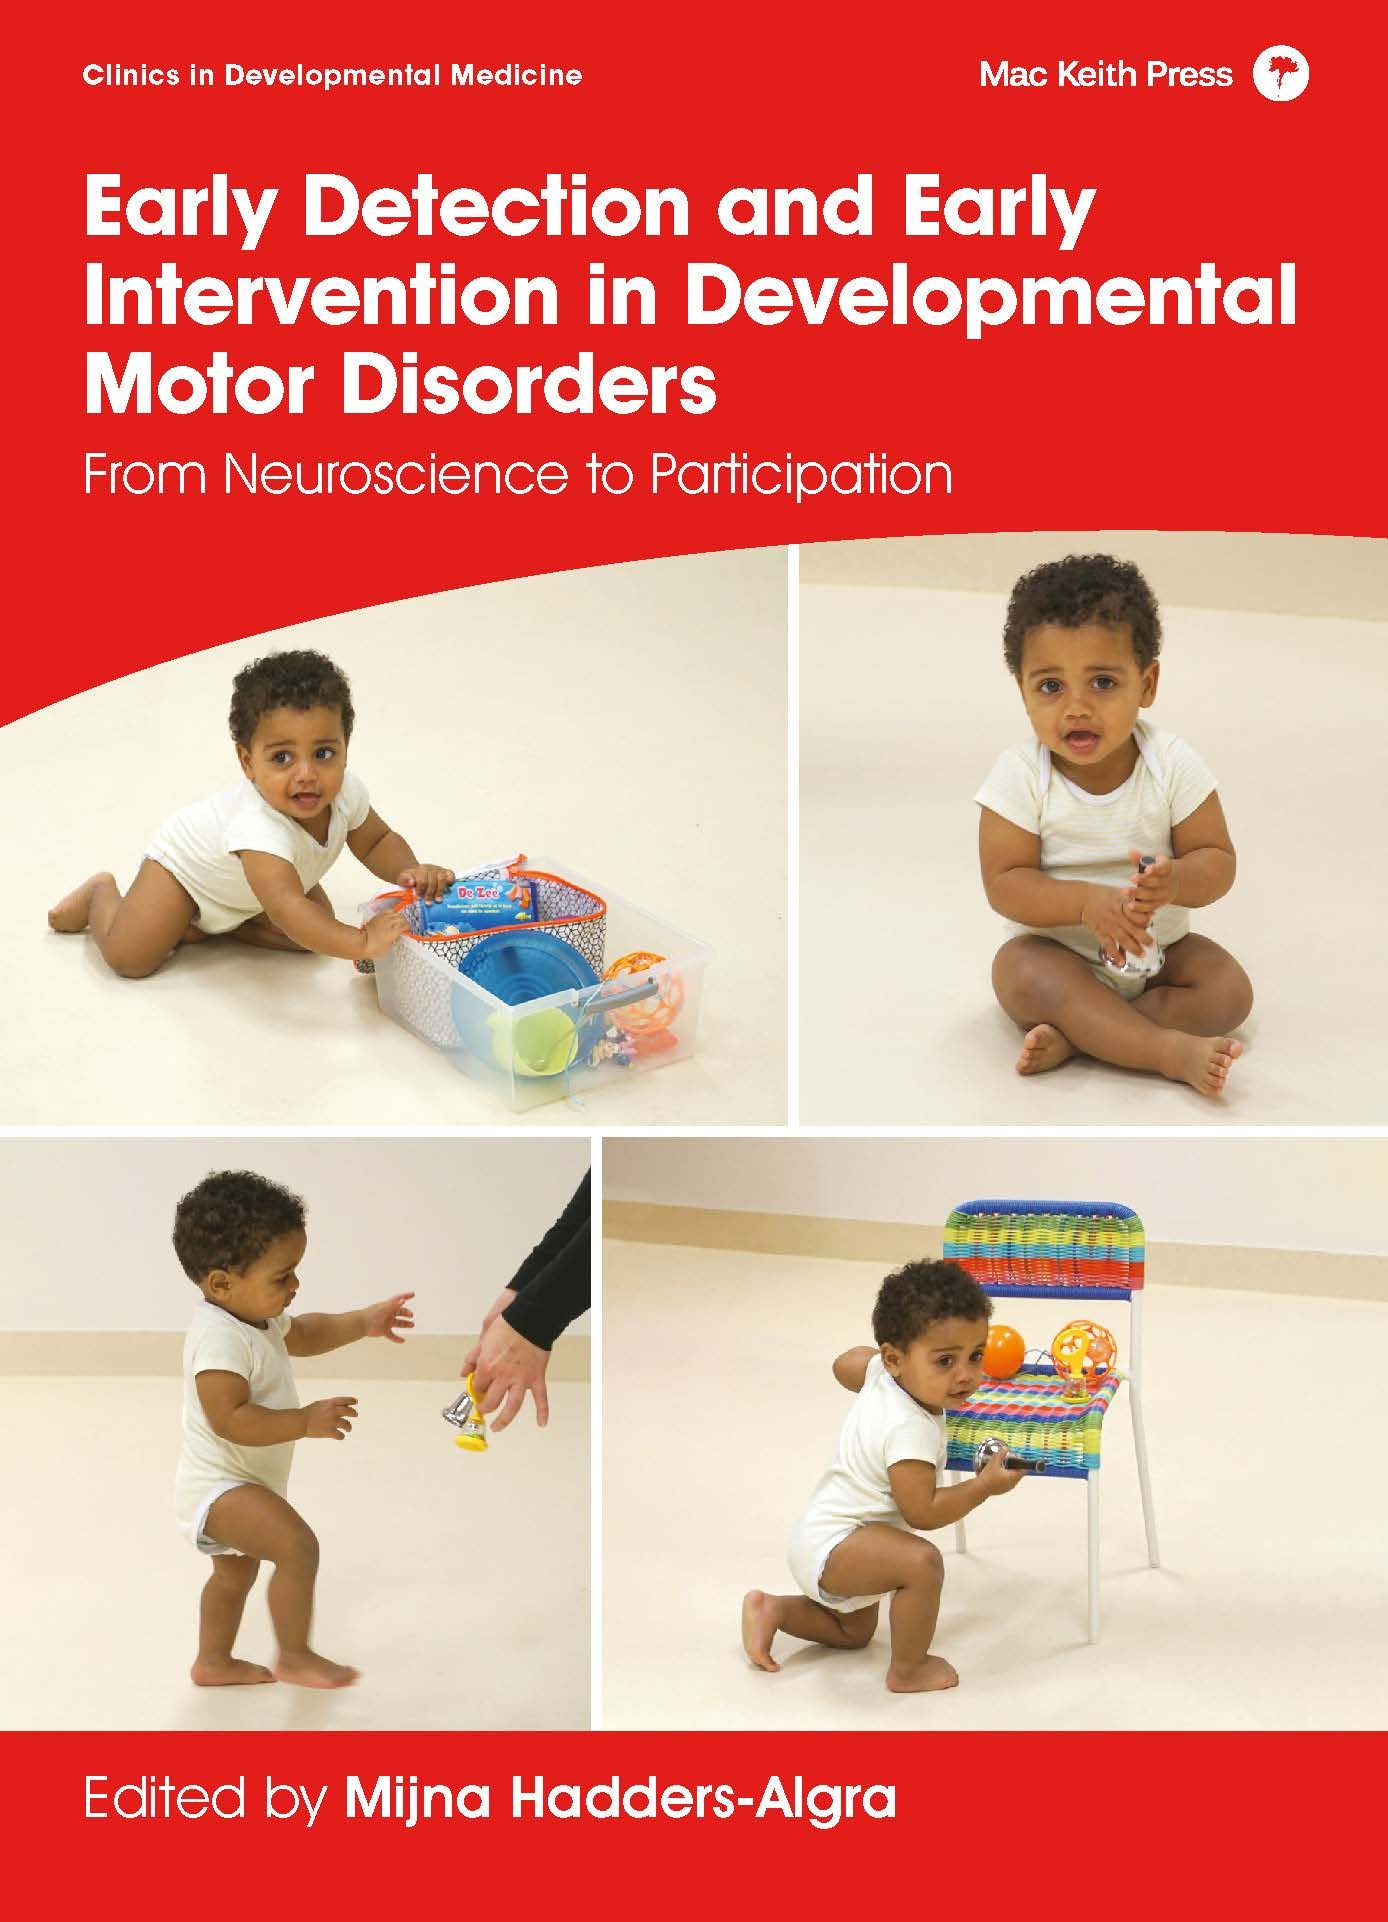 Early-detection-and-early-intervention-in-developmental disorders